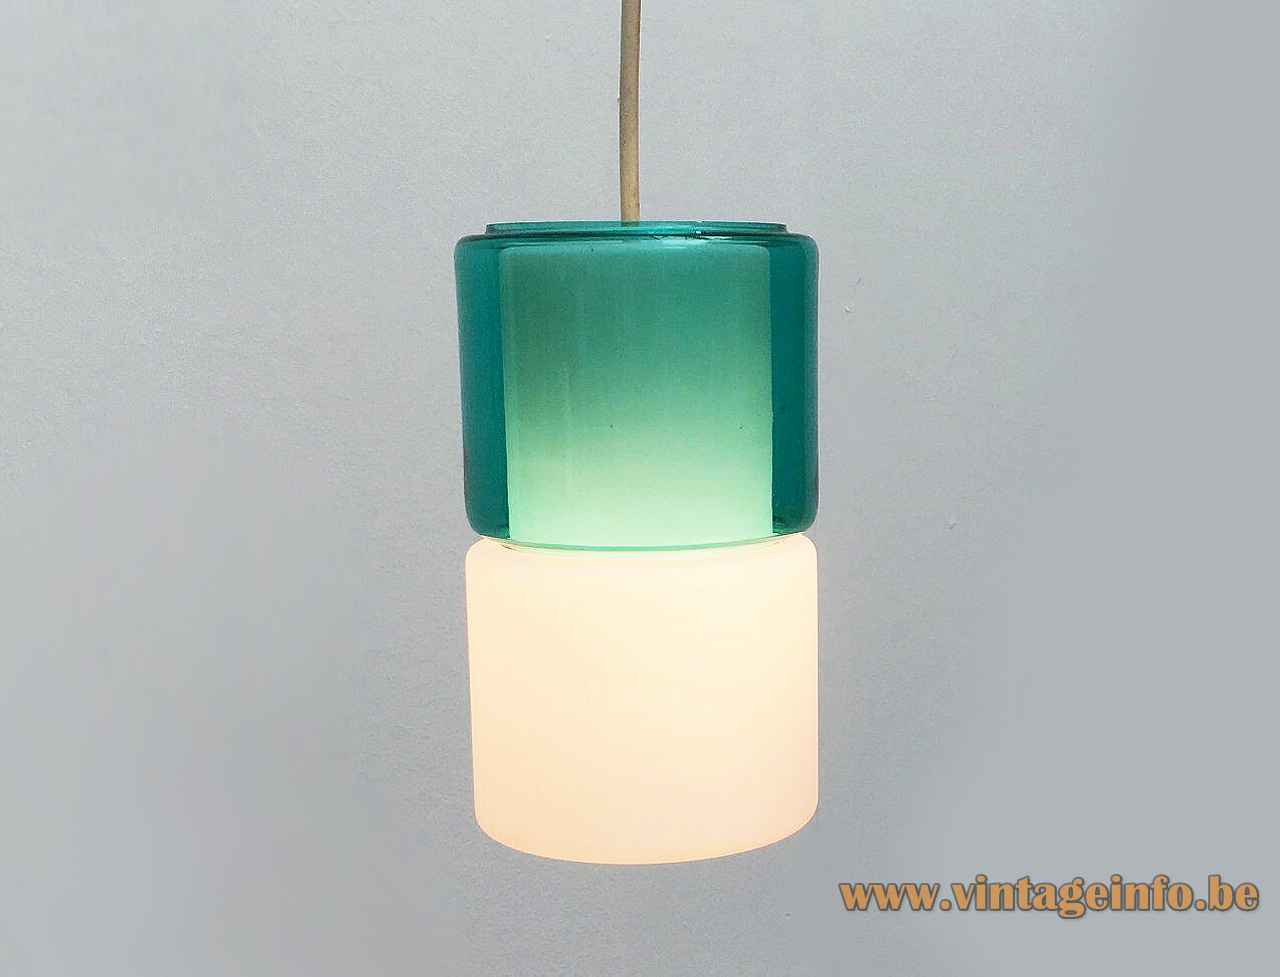 Peill + Putzler duotone pendant lamp opal & clear green hand blown glass lampshade 1950s 1960s Germany